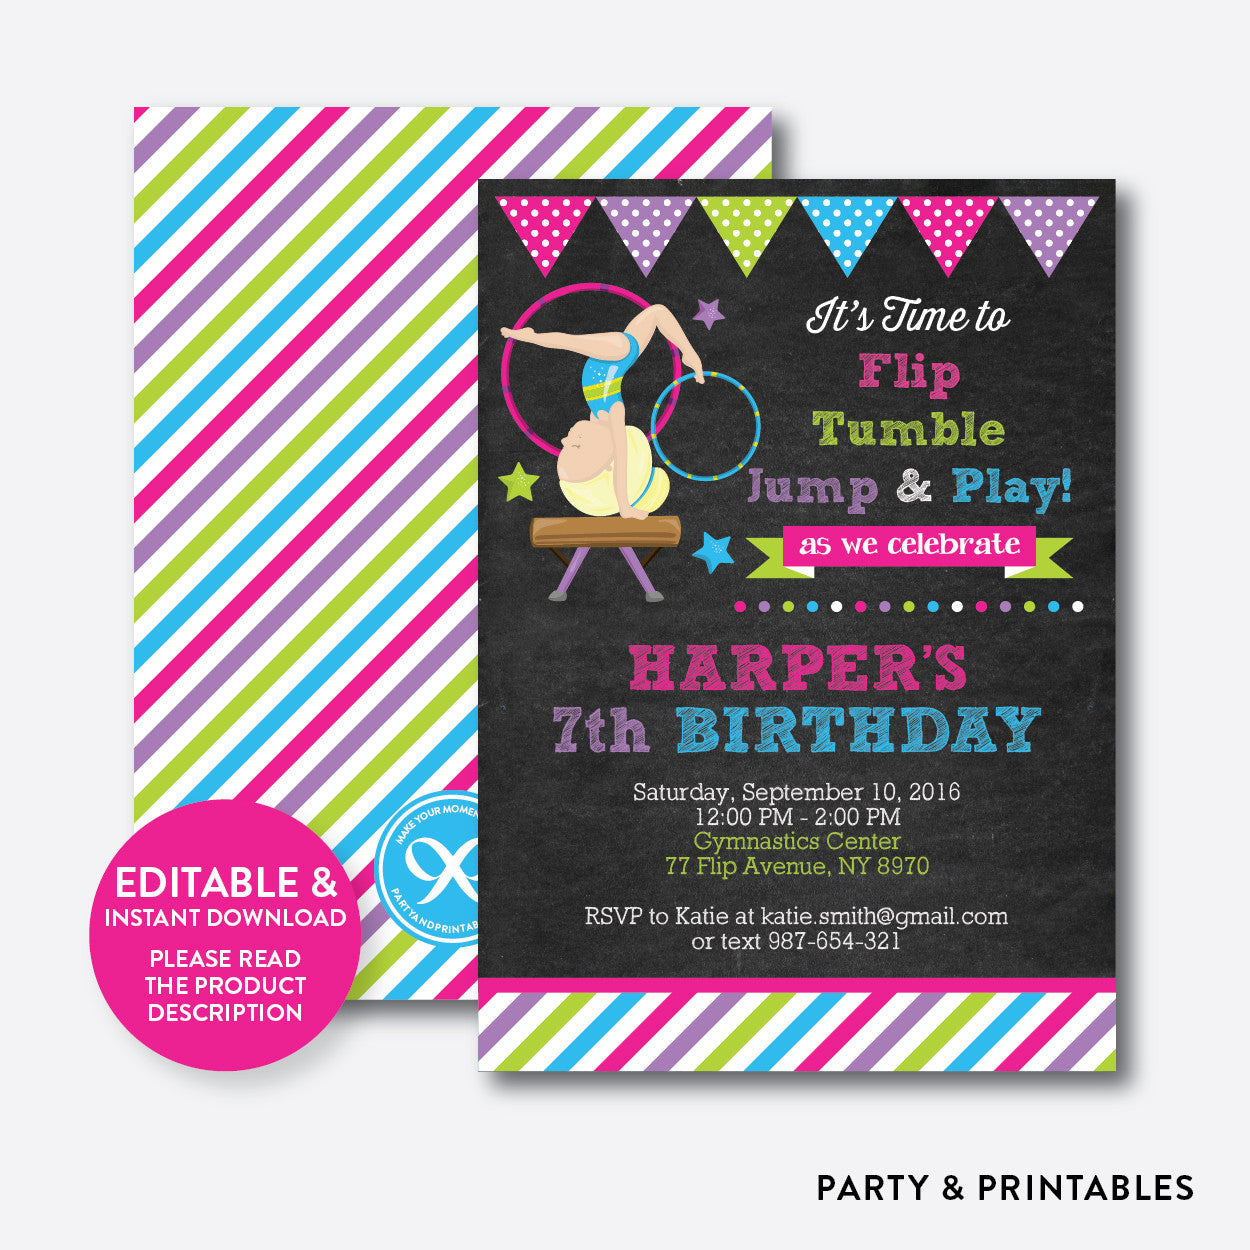 Gymnastics Chalkboard Kids Birthday Invitation / Editable / Instant Download (CKB.469B), invitation - Party and Printables